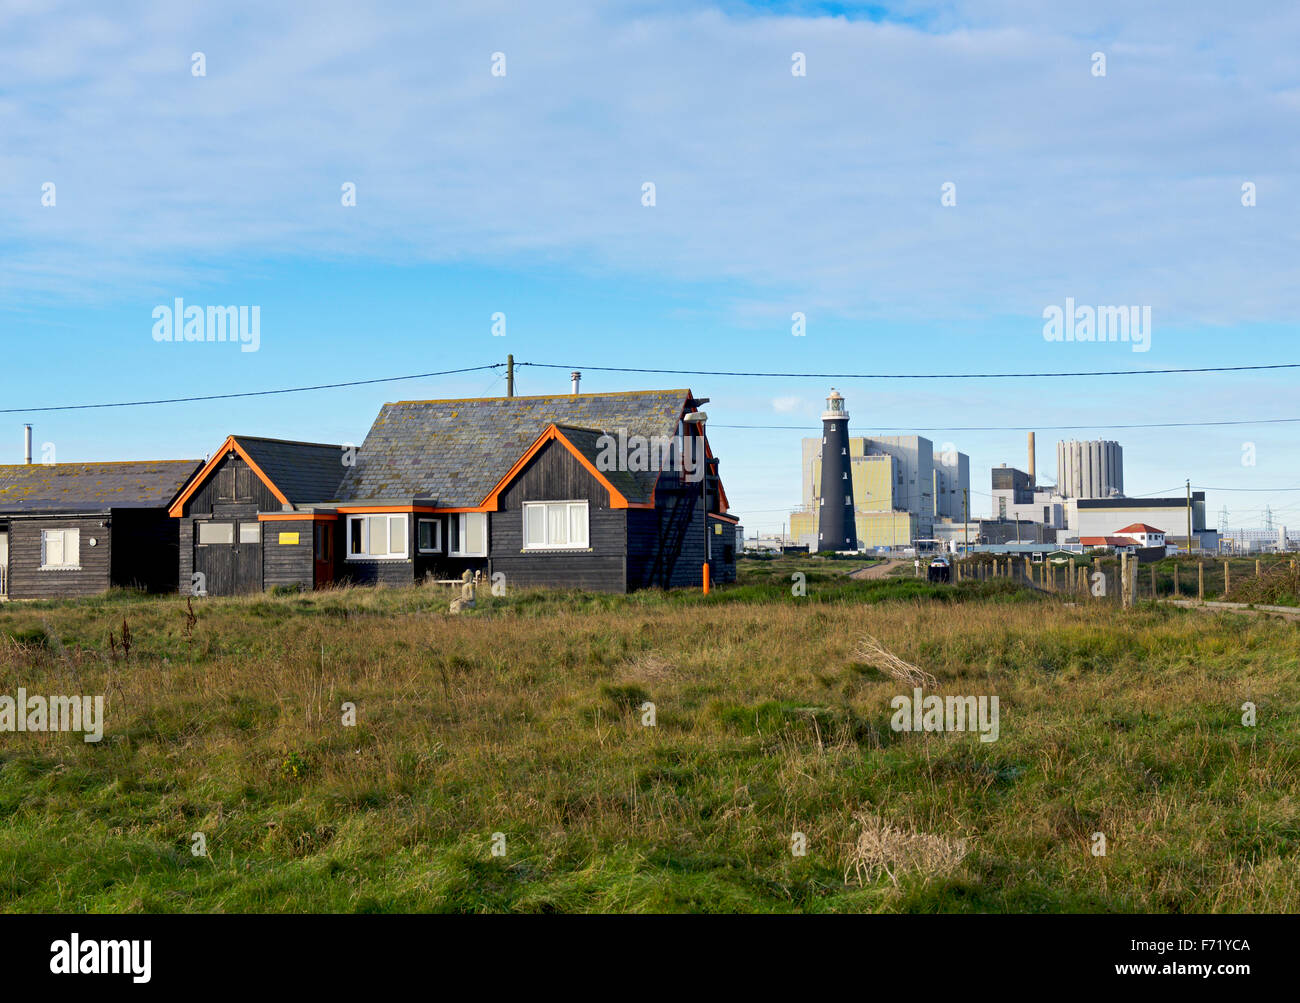 Wooden cottage and nuclear power station, Dungeness, Kent, England UK - Stock Image